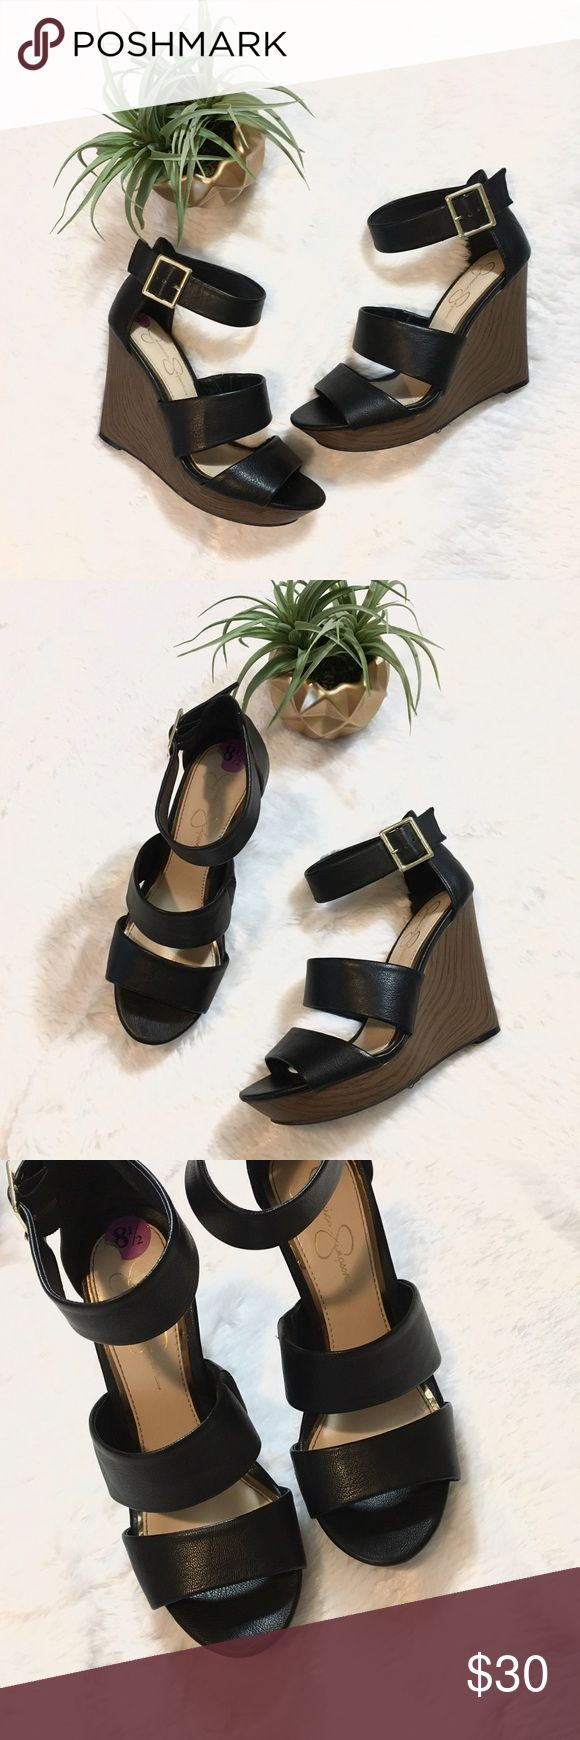 🆕 Jessica Simpsons Black and Brown Buckle Wedges 🆕 Jessica Simpsons Black and Brown Buckle Wedges • New with stickers still attached on sole • Very comfortable for tall heel height • Fit true to size (I'm 8.5 in Nike shoes for comparison) • Stretchy band added to interior band for extra comfort • Let me know if you have questions! Jessica Simpson Shoes Heels